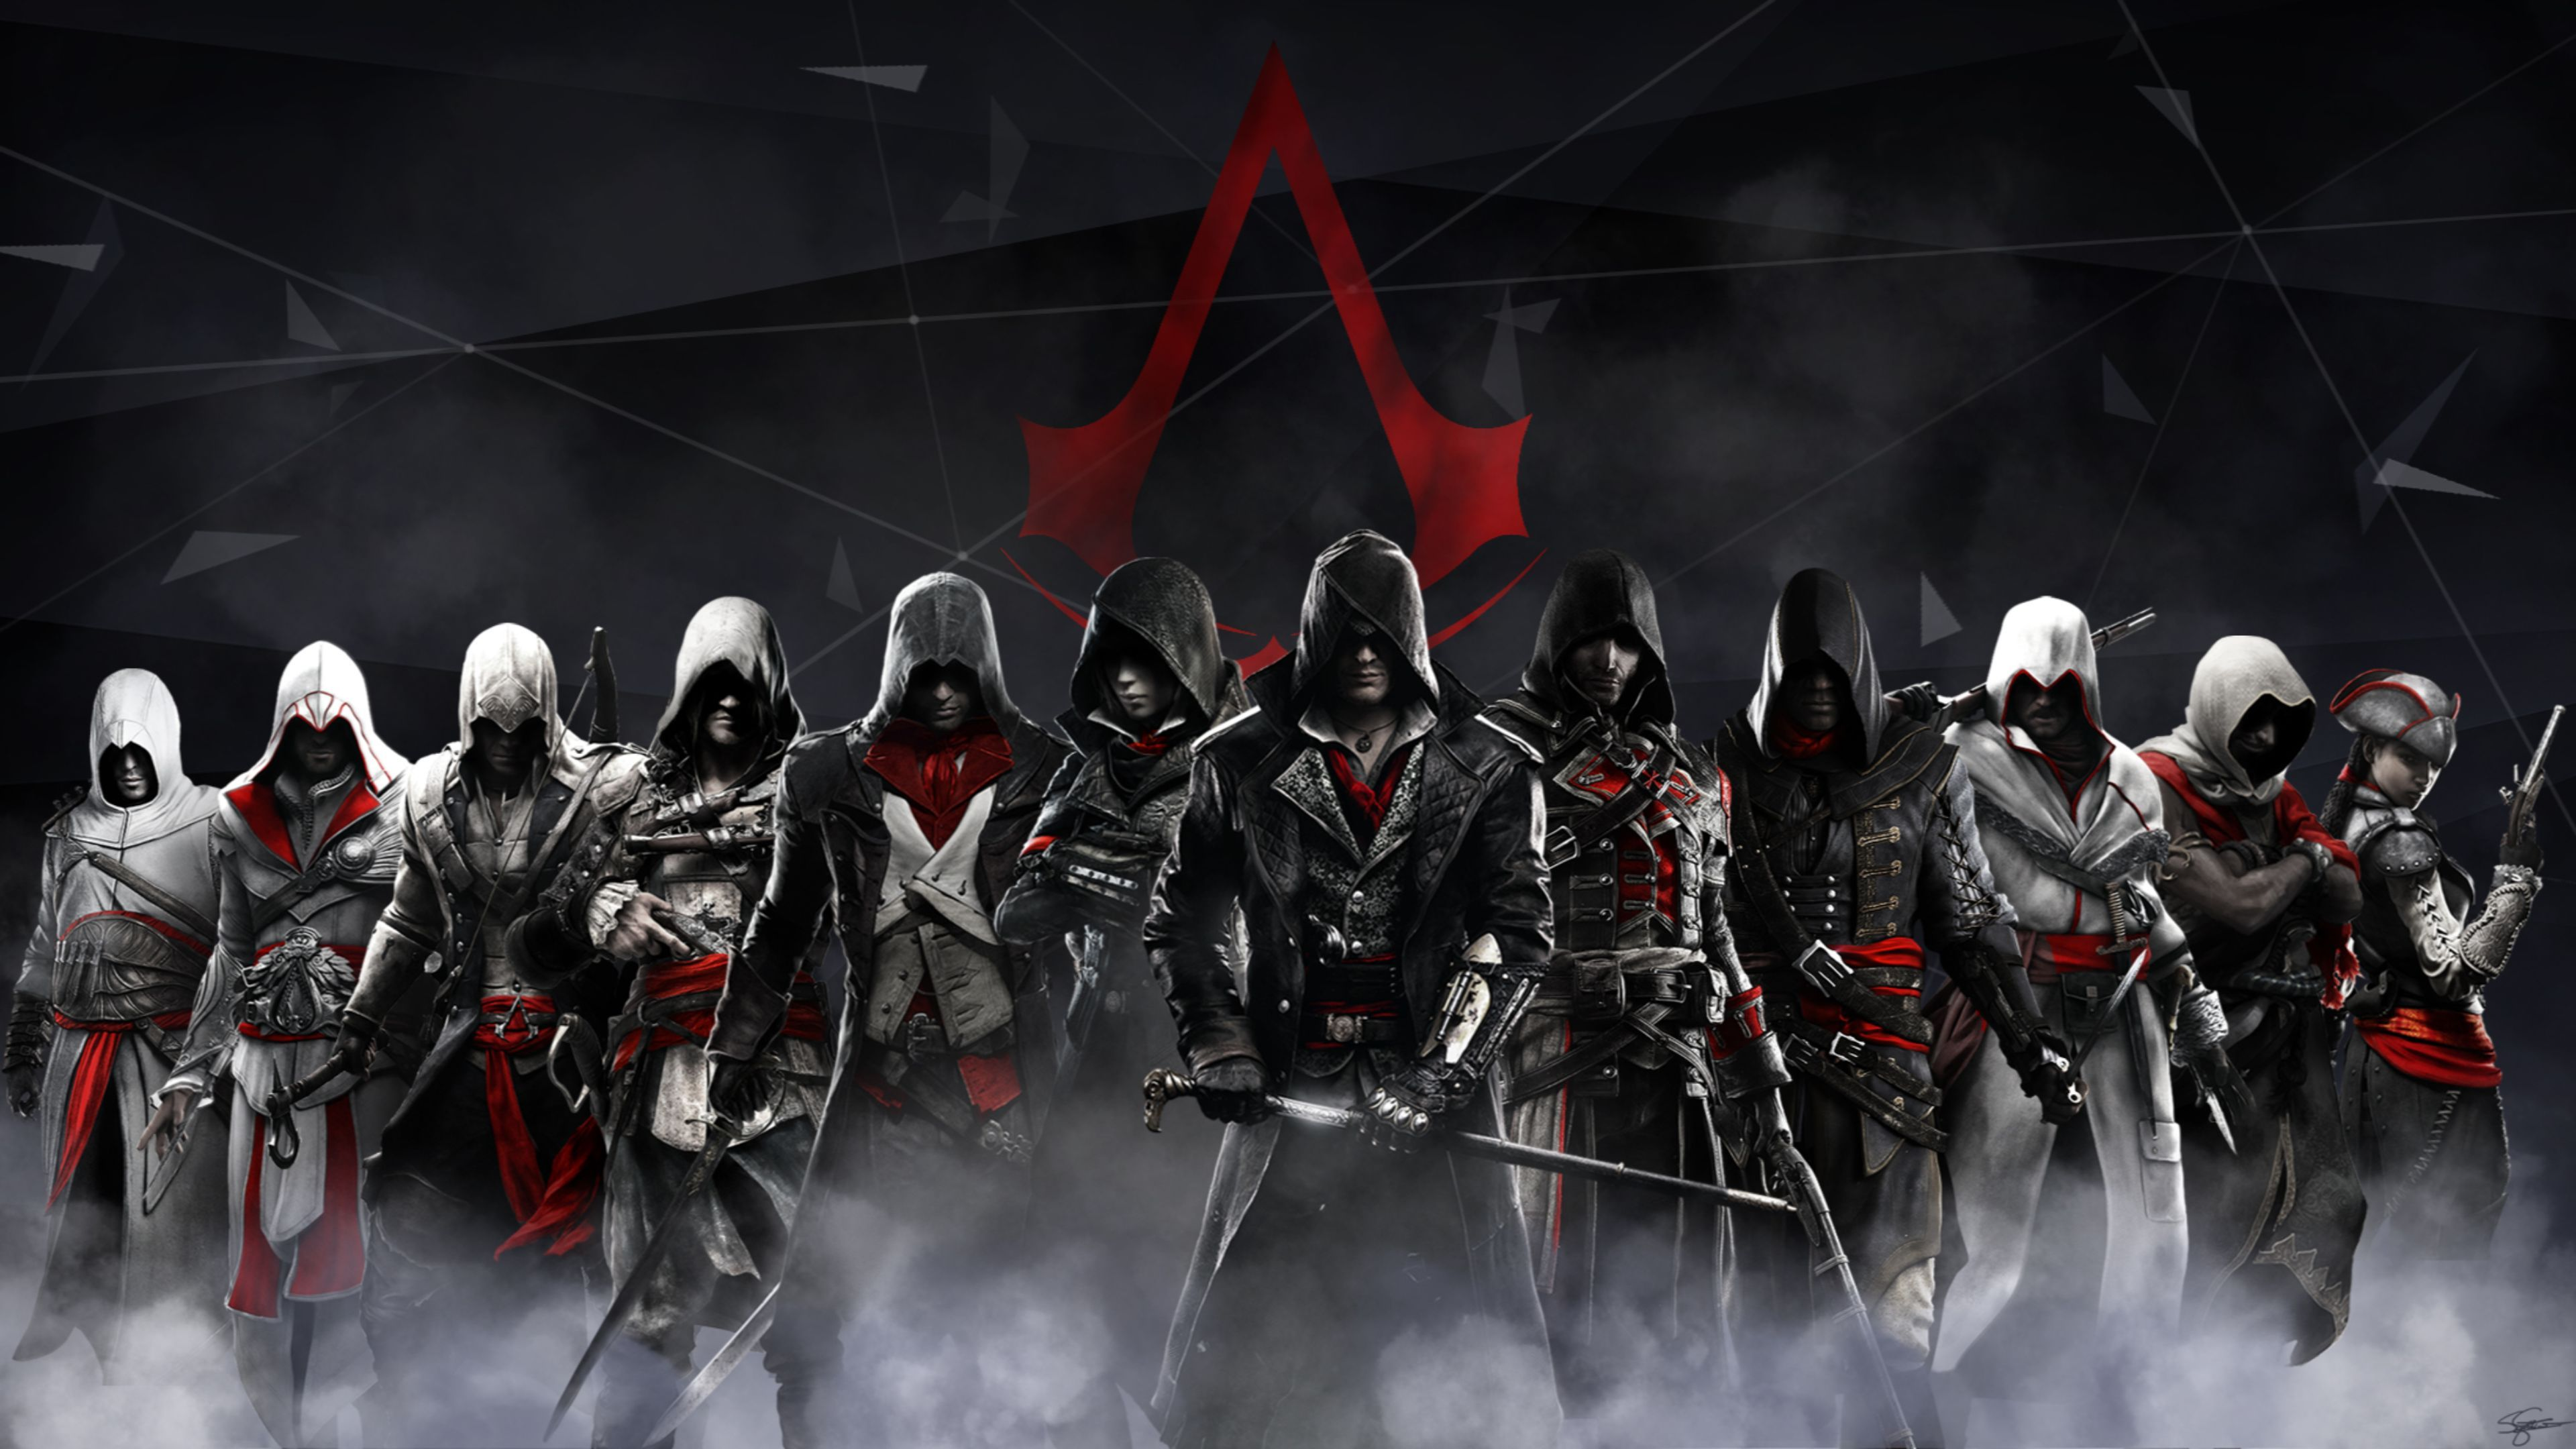 Assassins Creed Syndicate 4k Logo wallpaper whatever